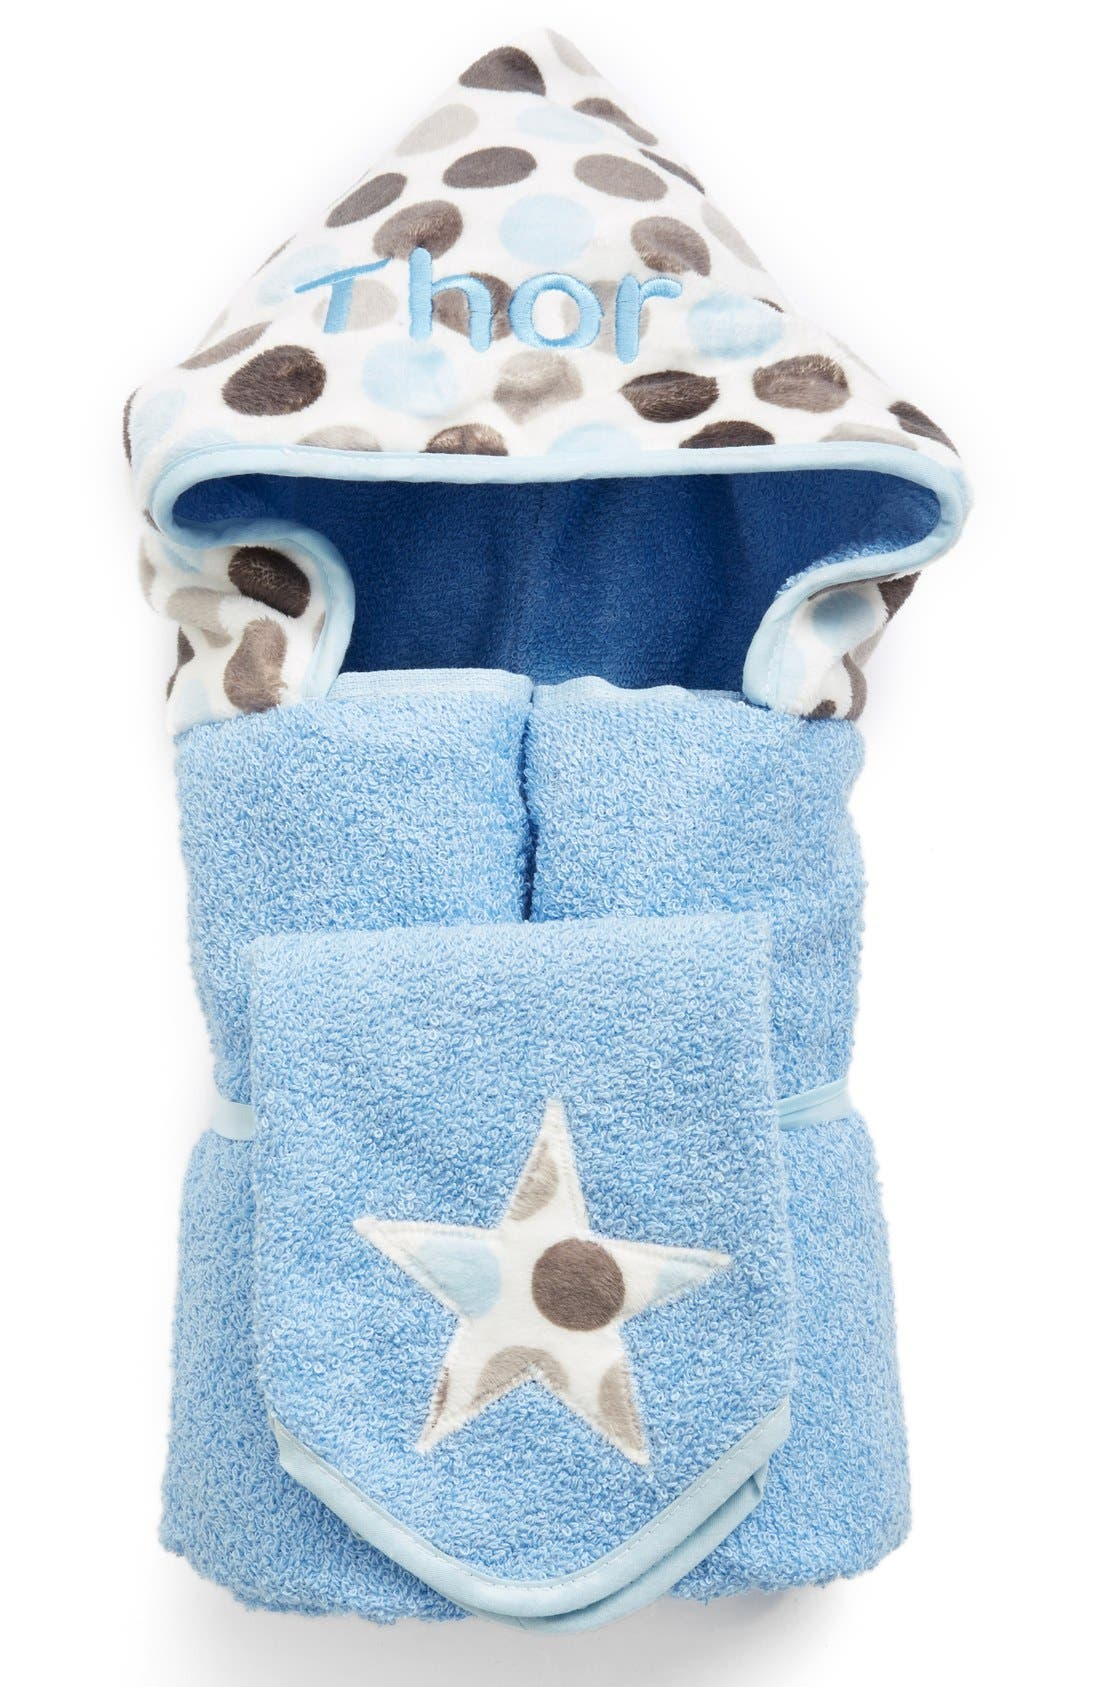 BIBZ N THINGZ,                             Personalized Hooded Towel,                             Main thumbnail 1, color,                             BLUE DOT